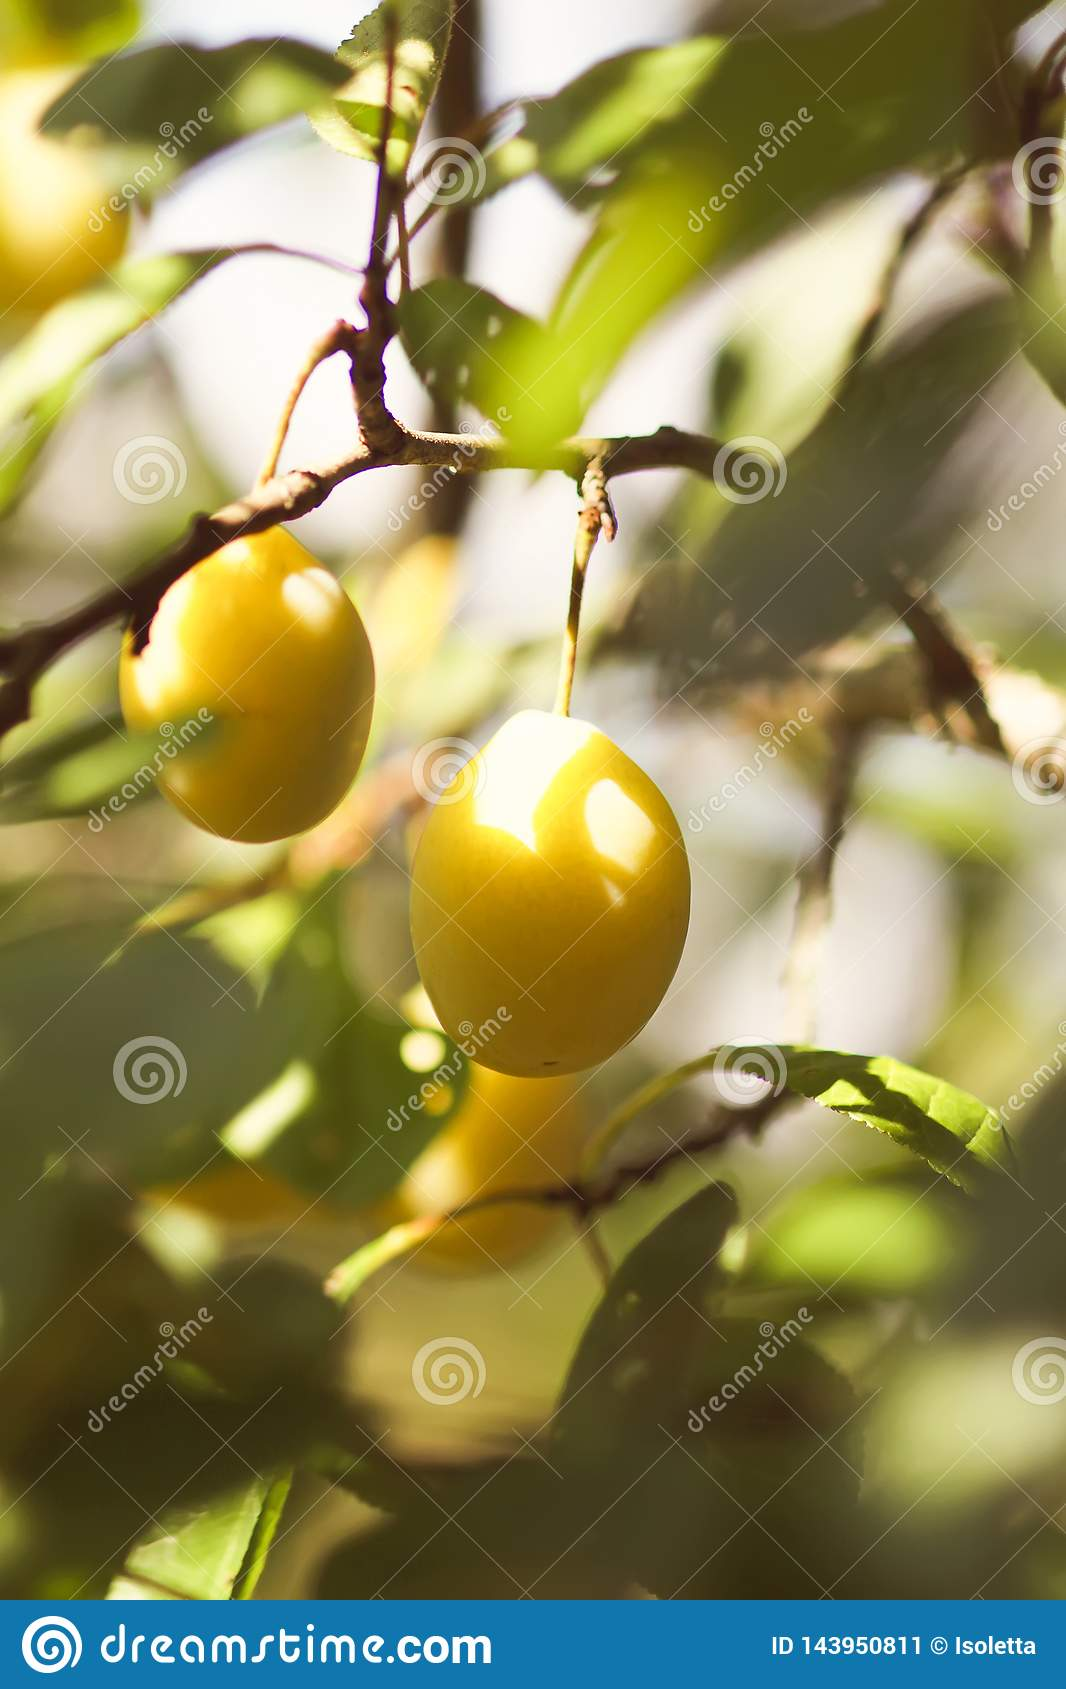 Yellow plums on tree branches in summer garden. Seasonal sweet ripe fruits.